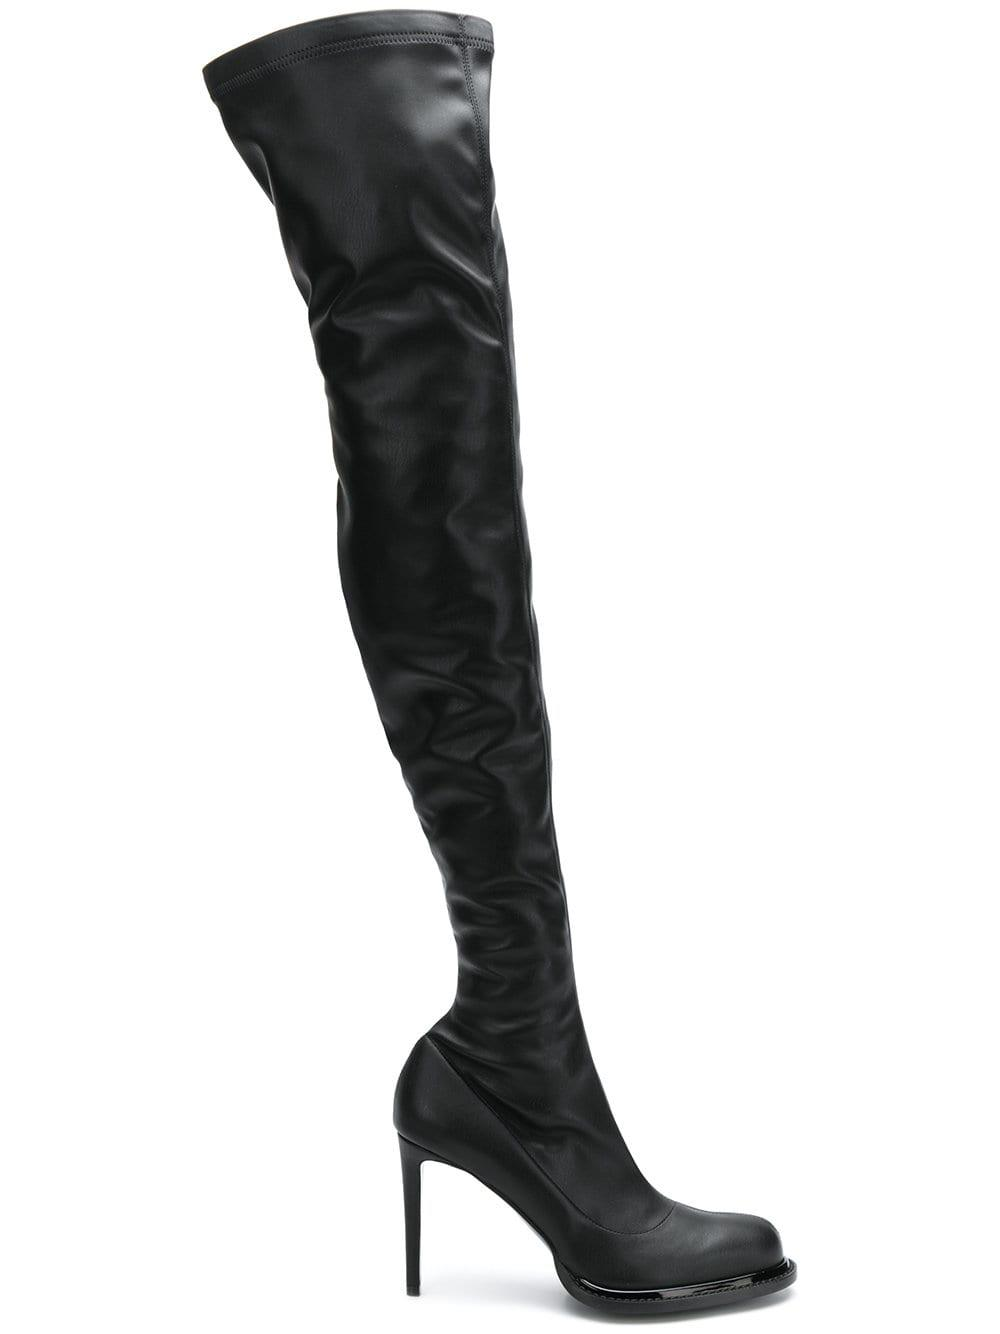 9c5e19d7ef6 Stella Mccartney Palmer Over-the-knee Boots in Black - Lyst